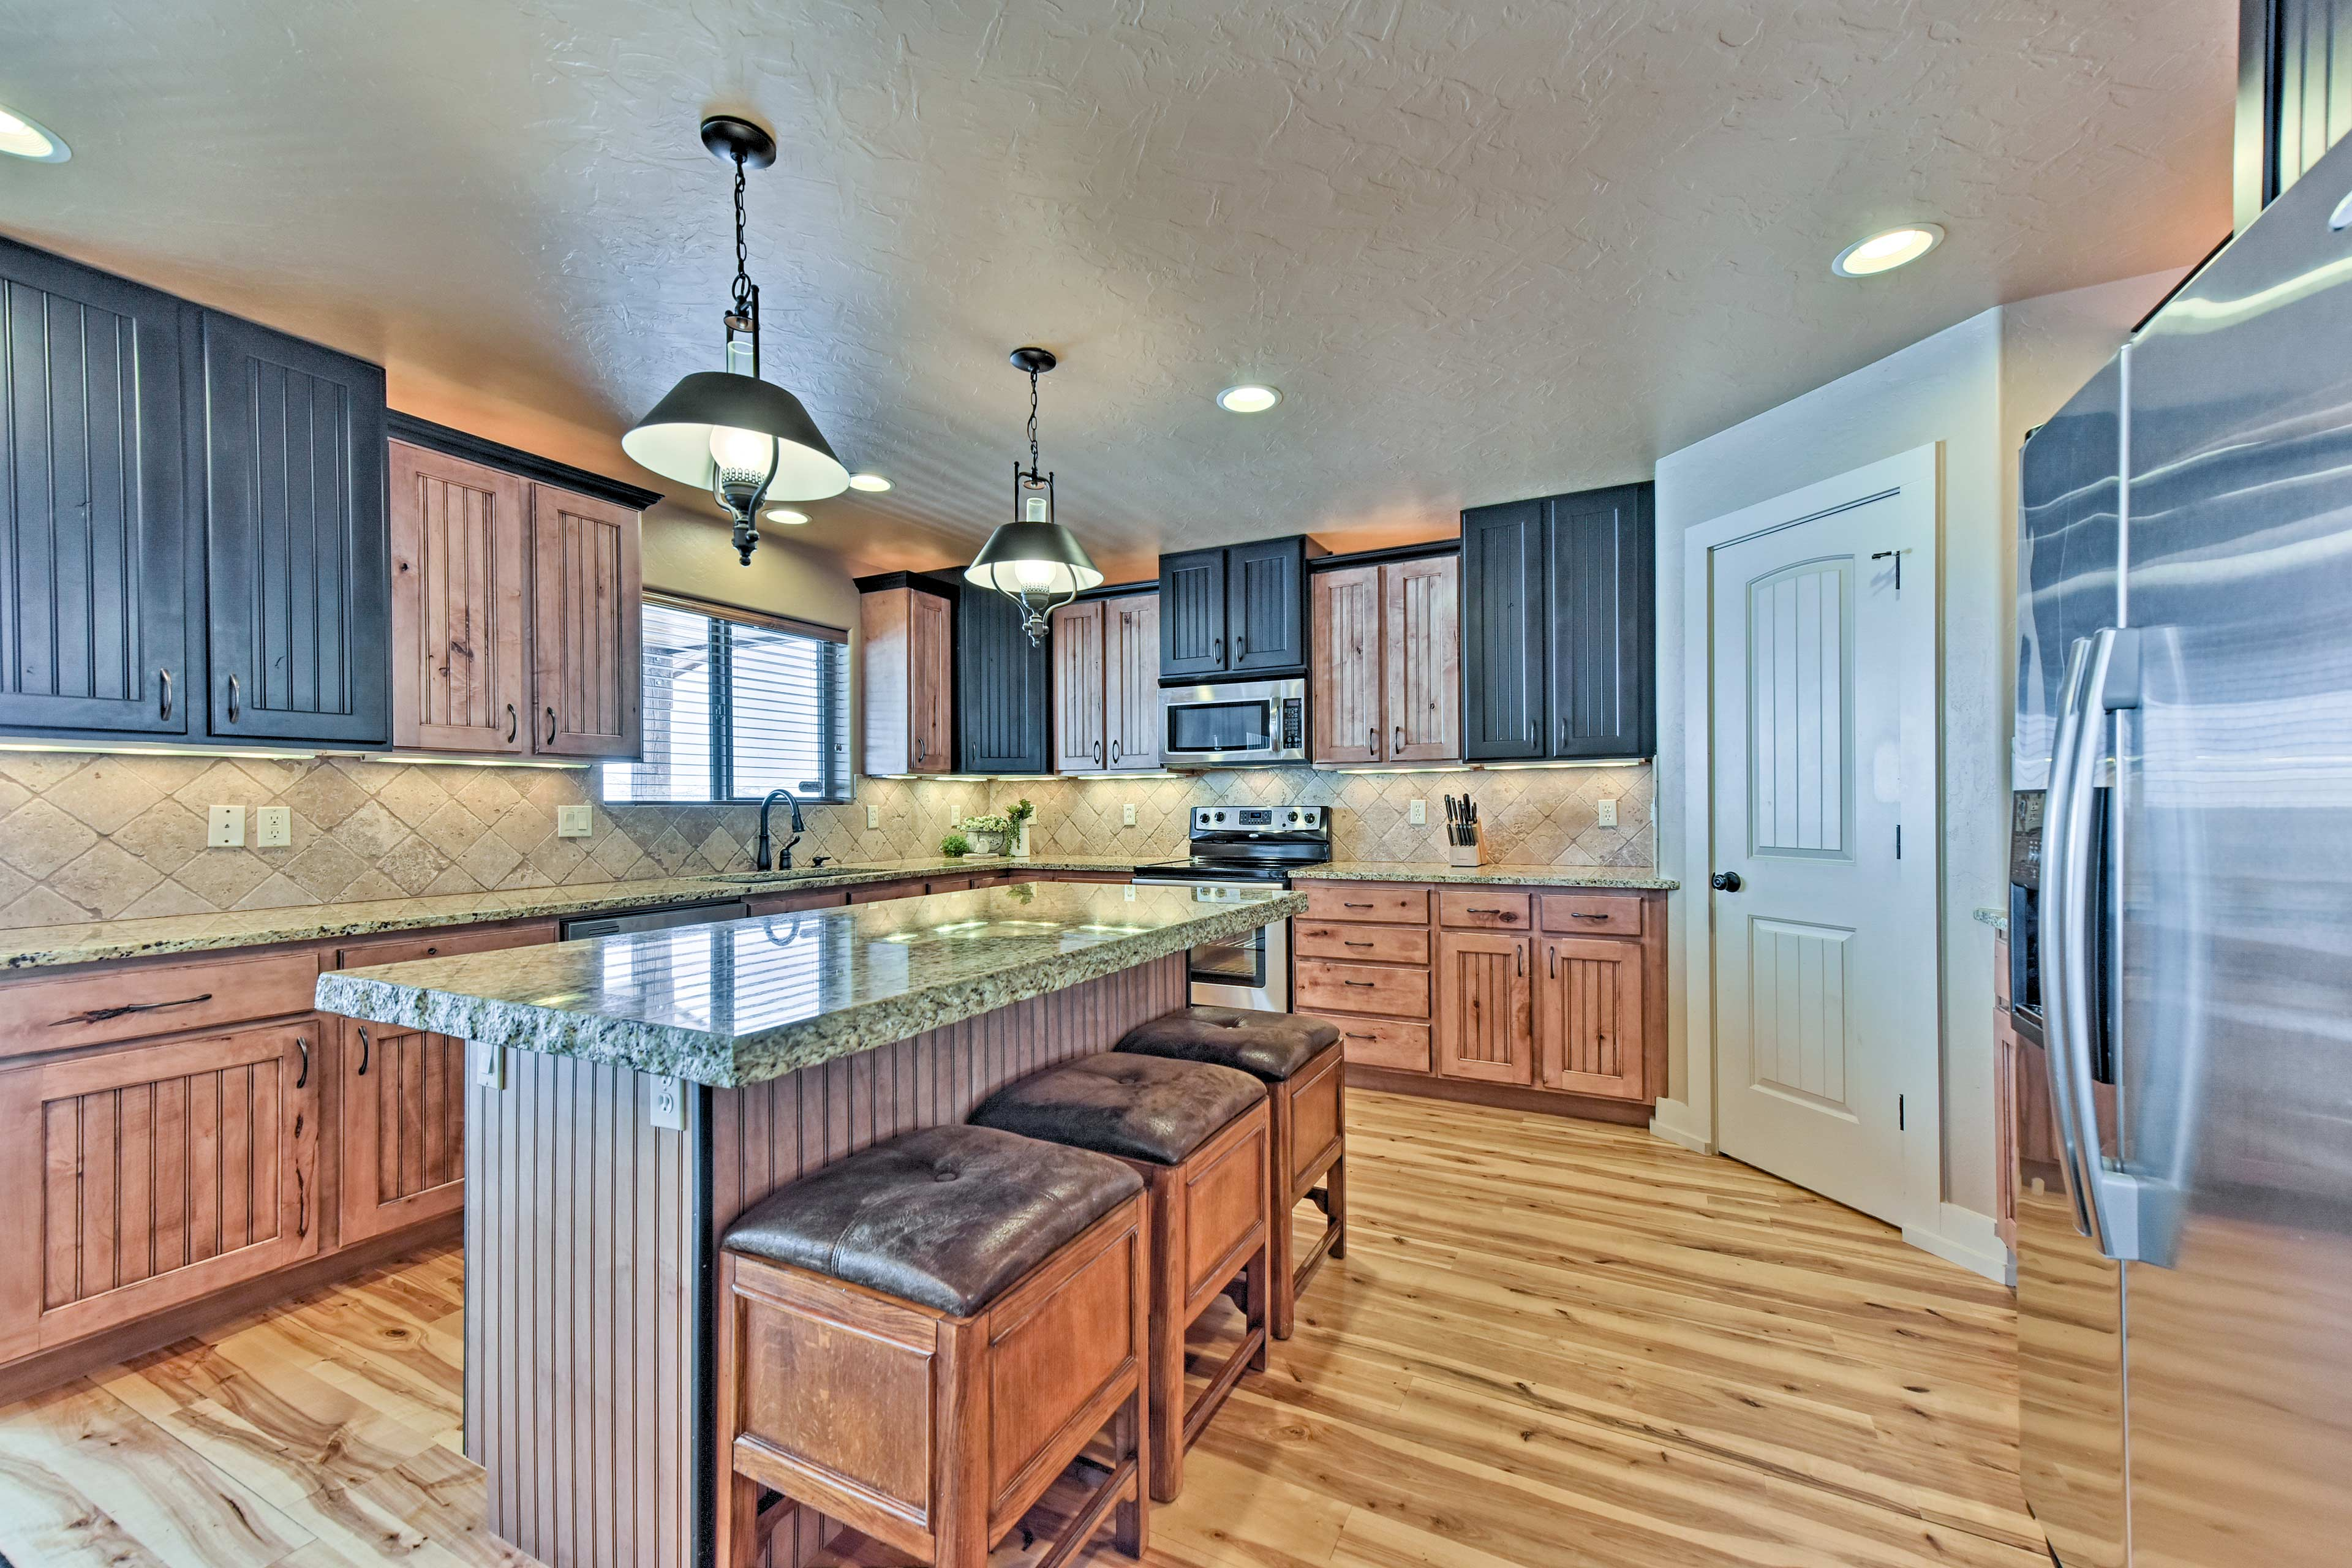 The fully equipped kitchen is large and luxurious.